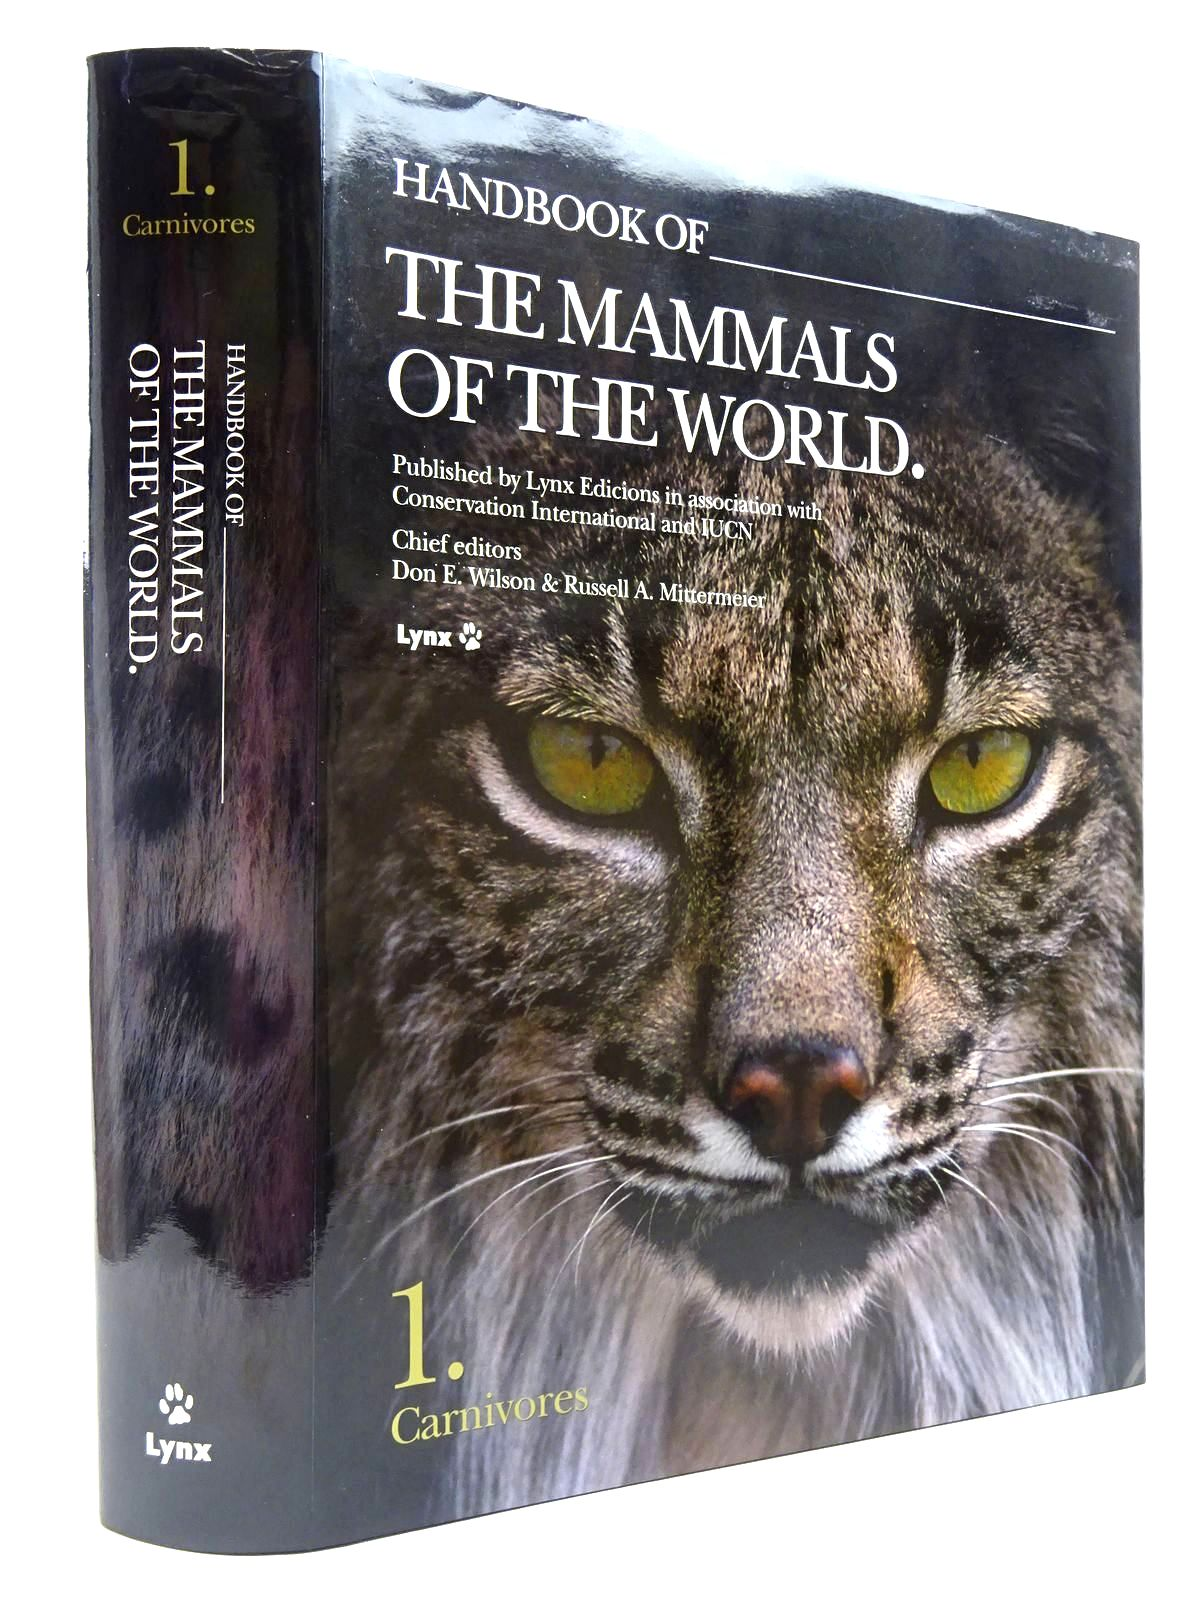 Photo of HANDBOOK OF THE MAMMALS OF THE WORLD 1. CARNIVORES- Stock Number: 2130635